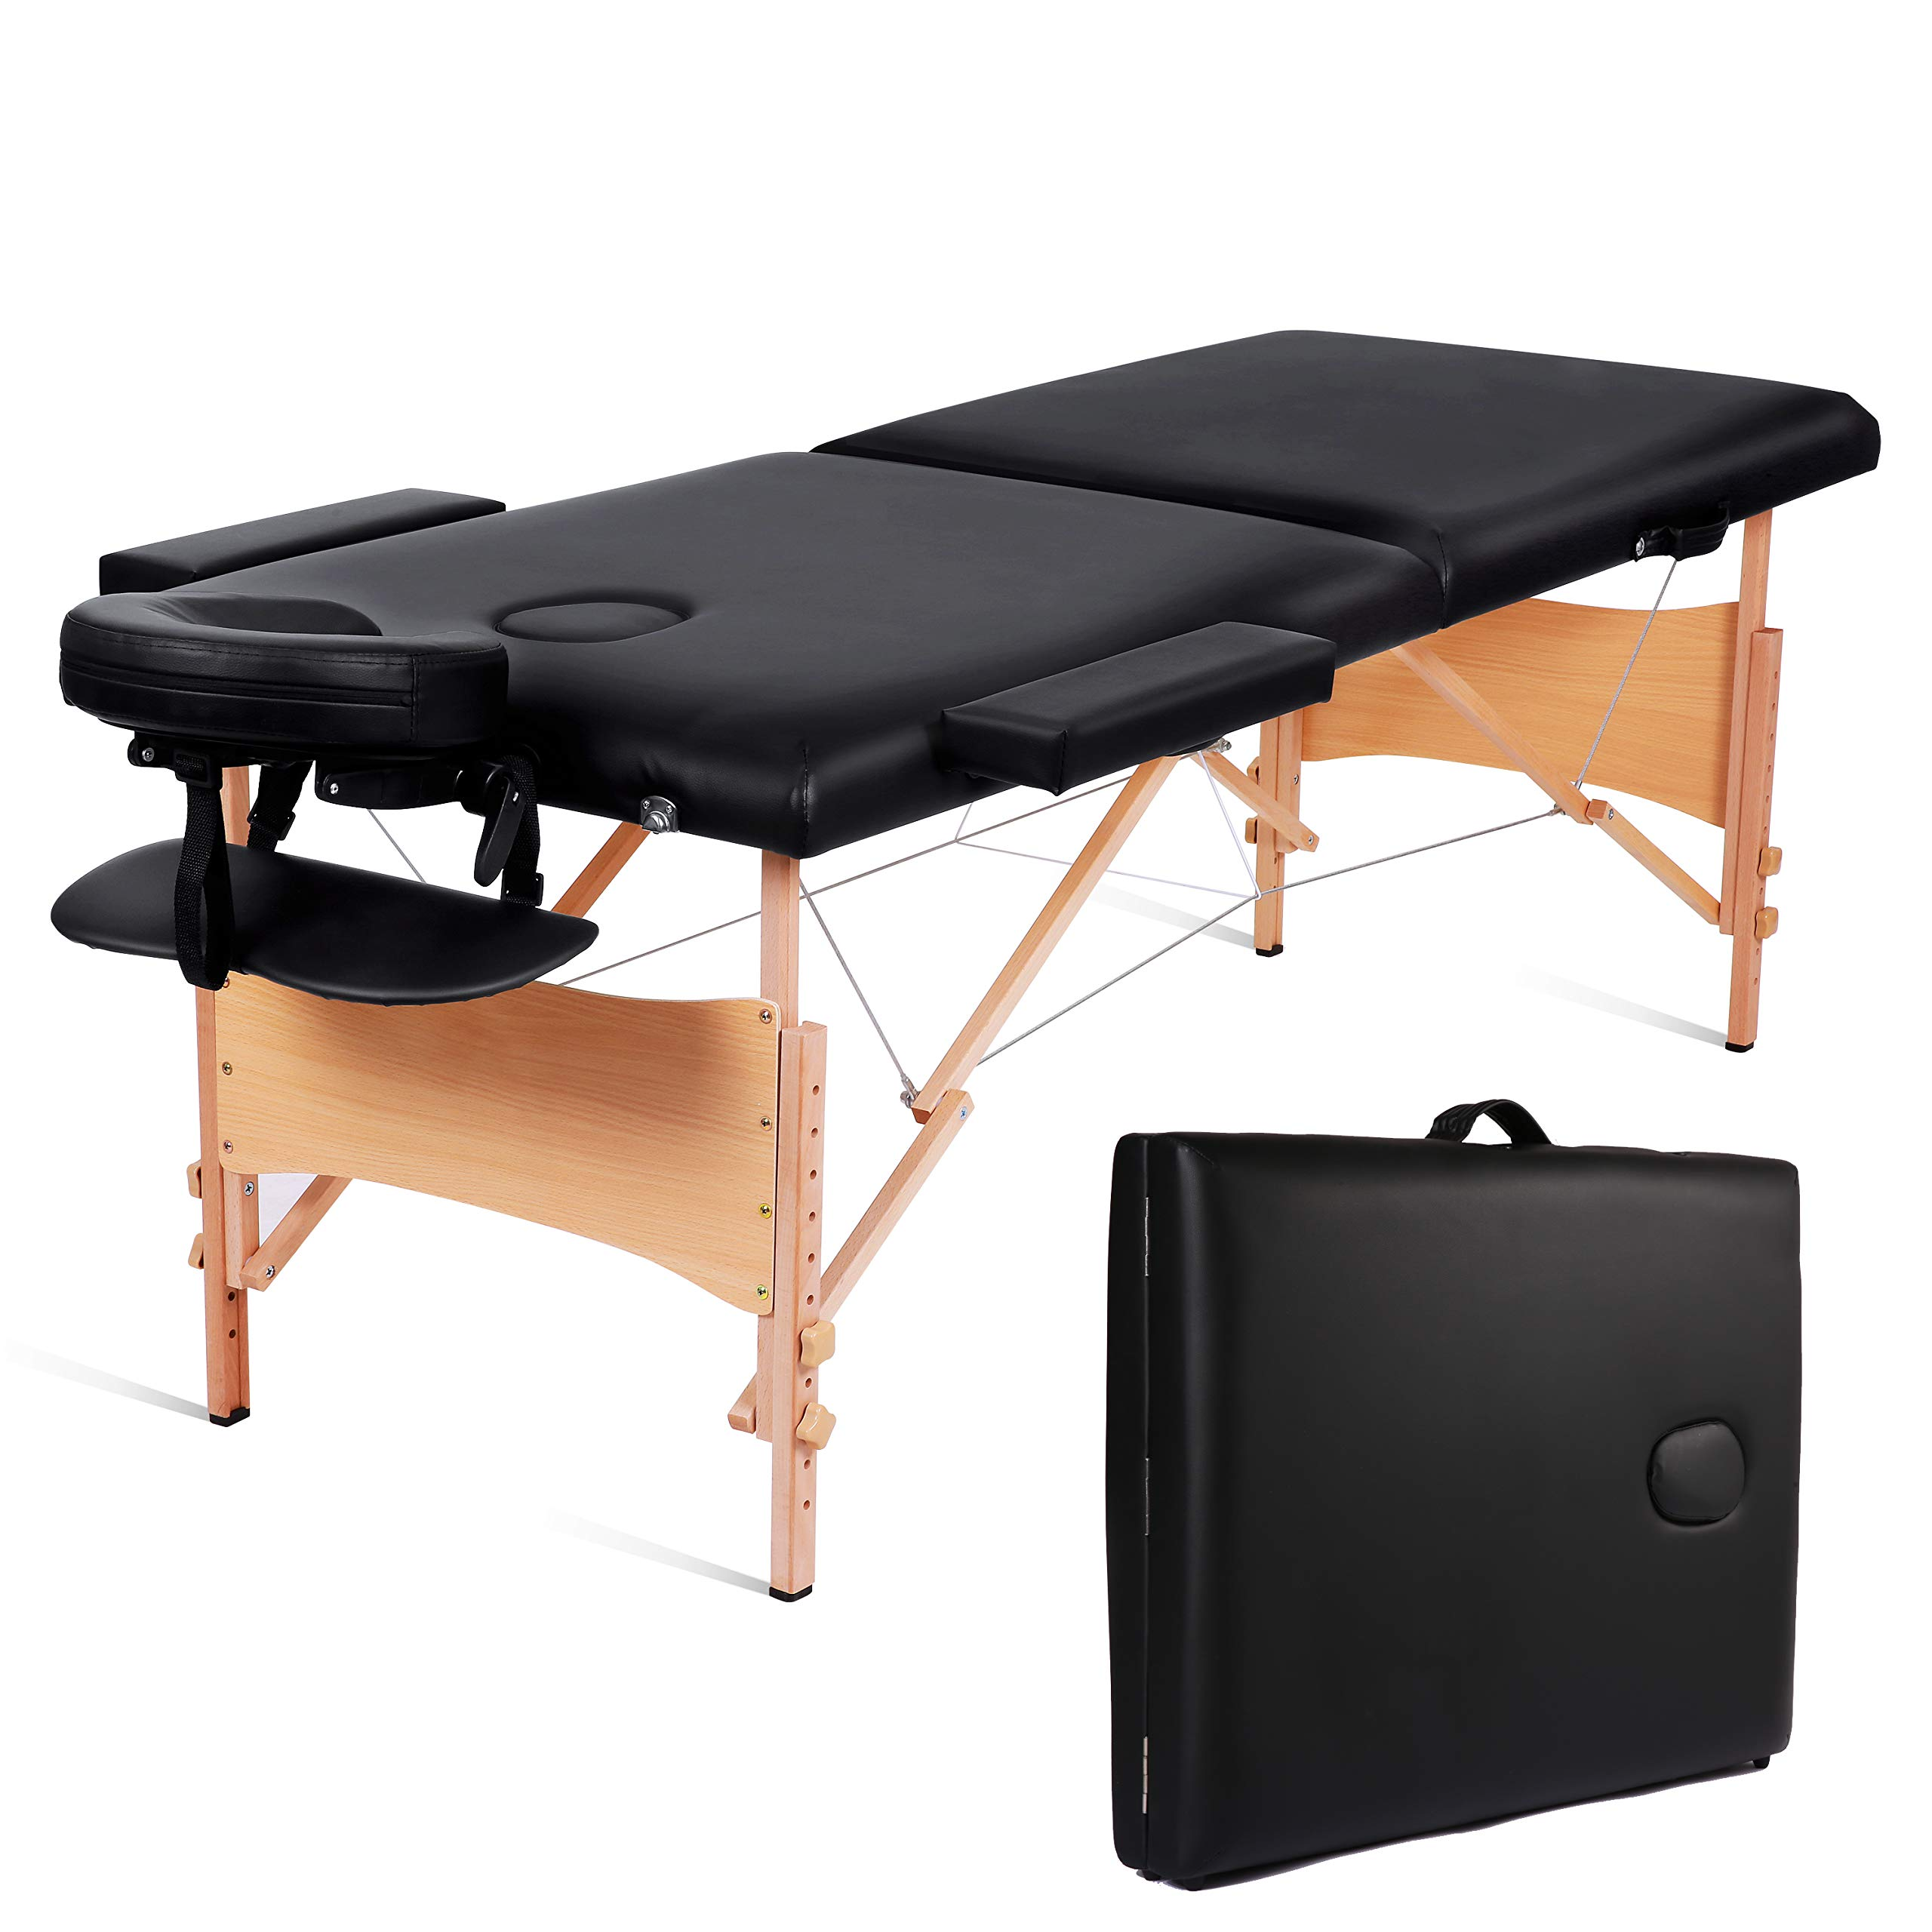 MaxKare Folding Massage Table Portable Facial SPA Professional Massage Bed With Carrying Bag 2 Fold Lash Bed with Head-& Armrest. (Black) by MaxKare